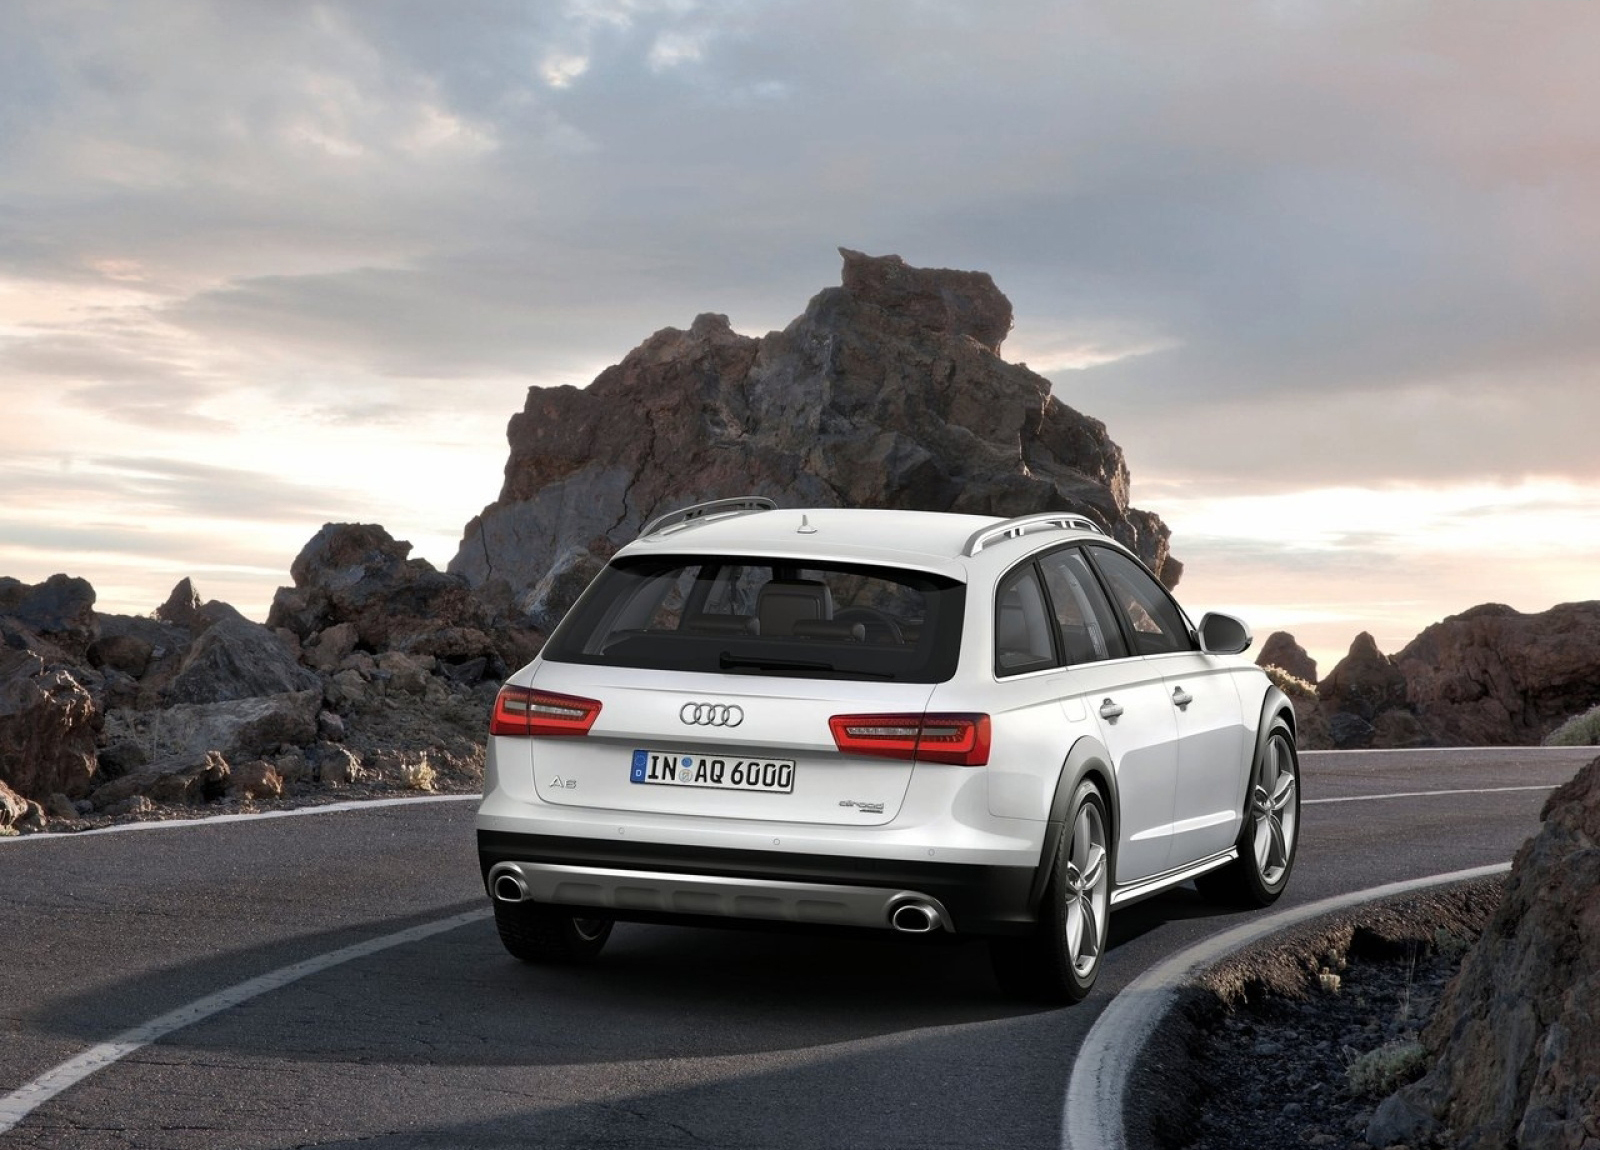 Audi A6 Allroad Hd Wallpapers The World Of Free Wallpaper - Medium